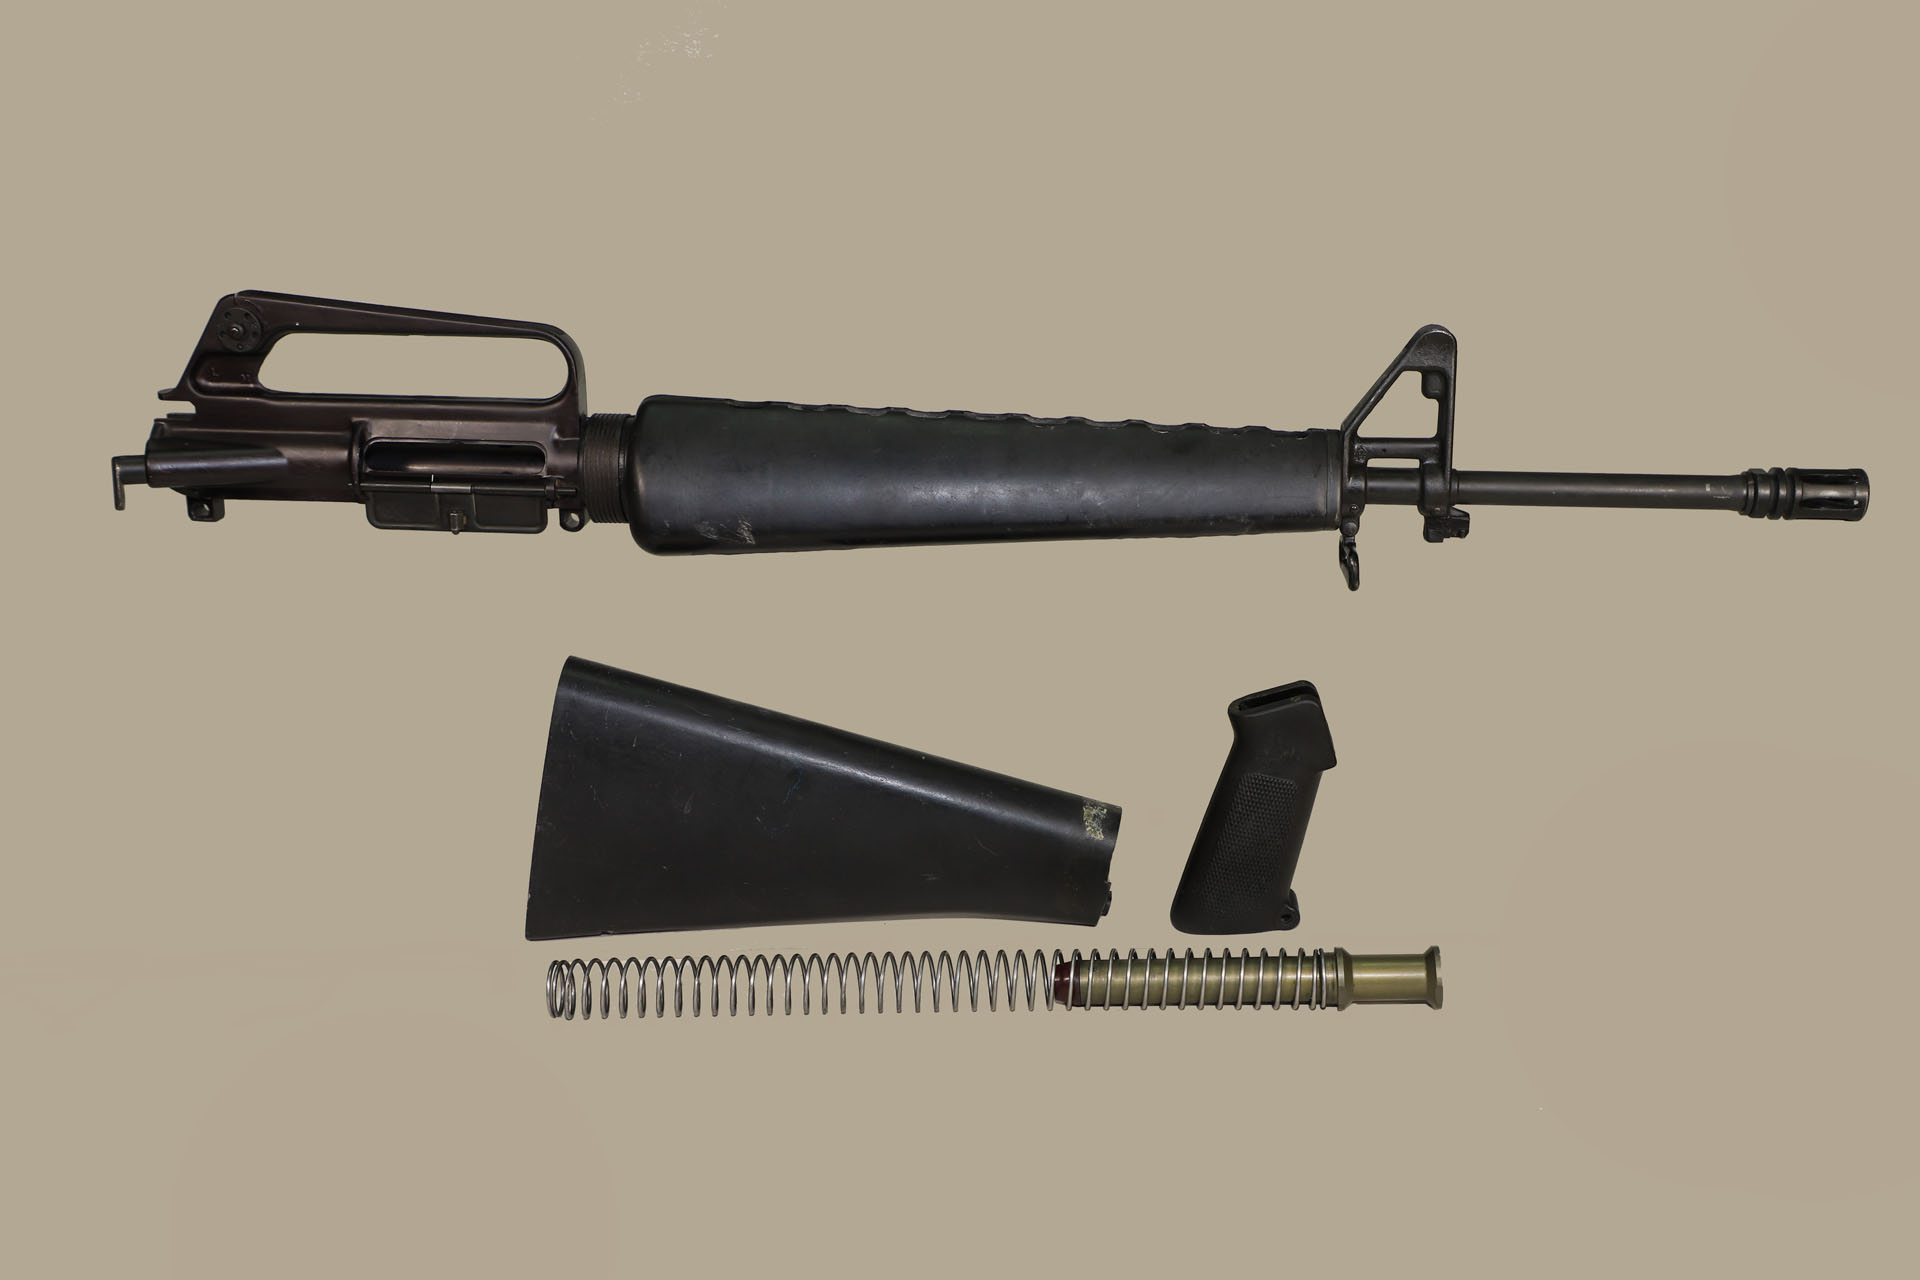 Colt USGI M16A1 Barreled Upper Receiver w/Stock, Handguards, Pistol Grip,  Buffer and Buffer Spring